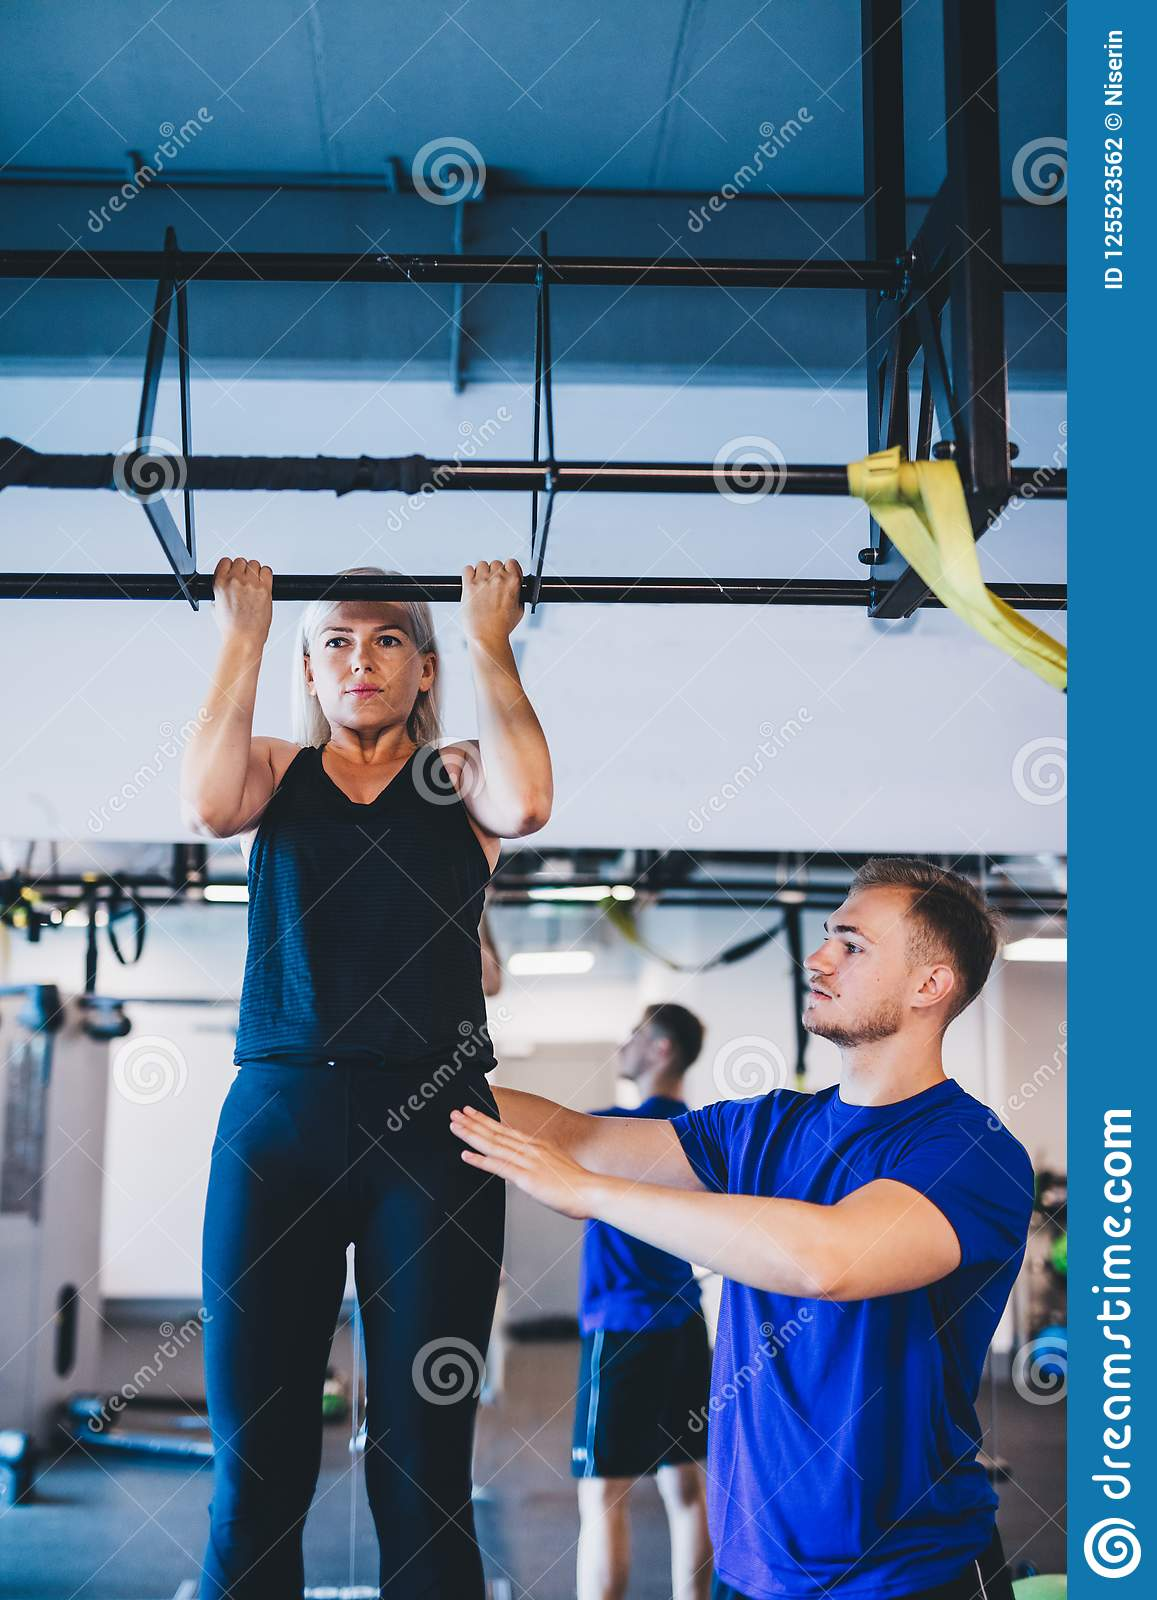 Woman doing pull-ups and a man securing her.